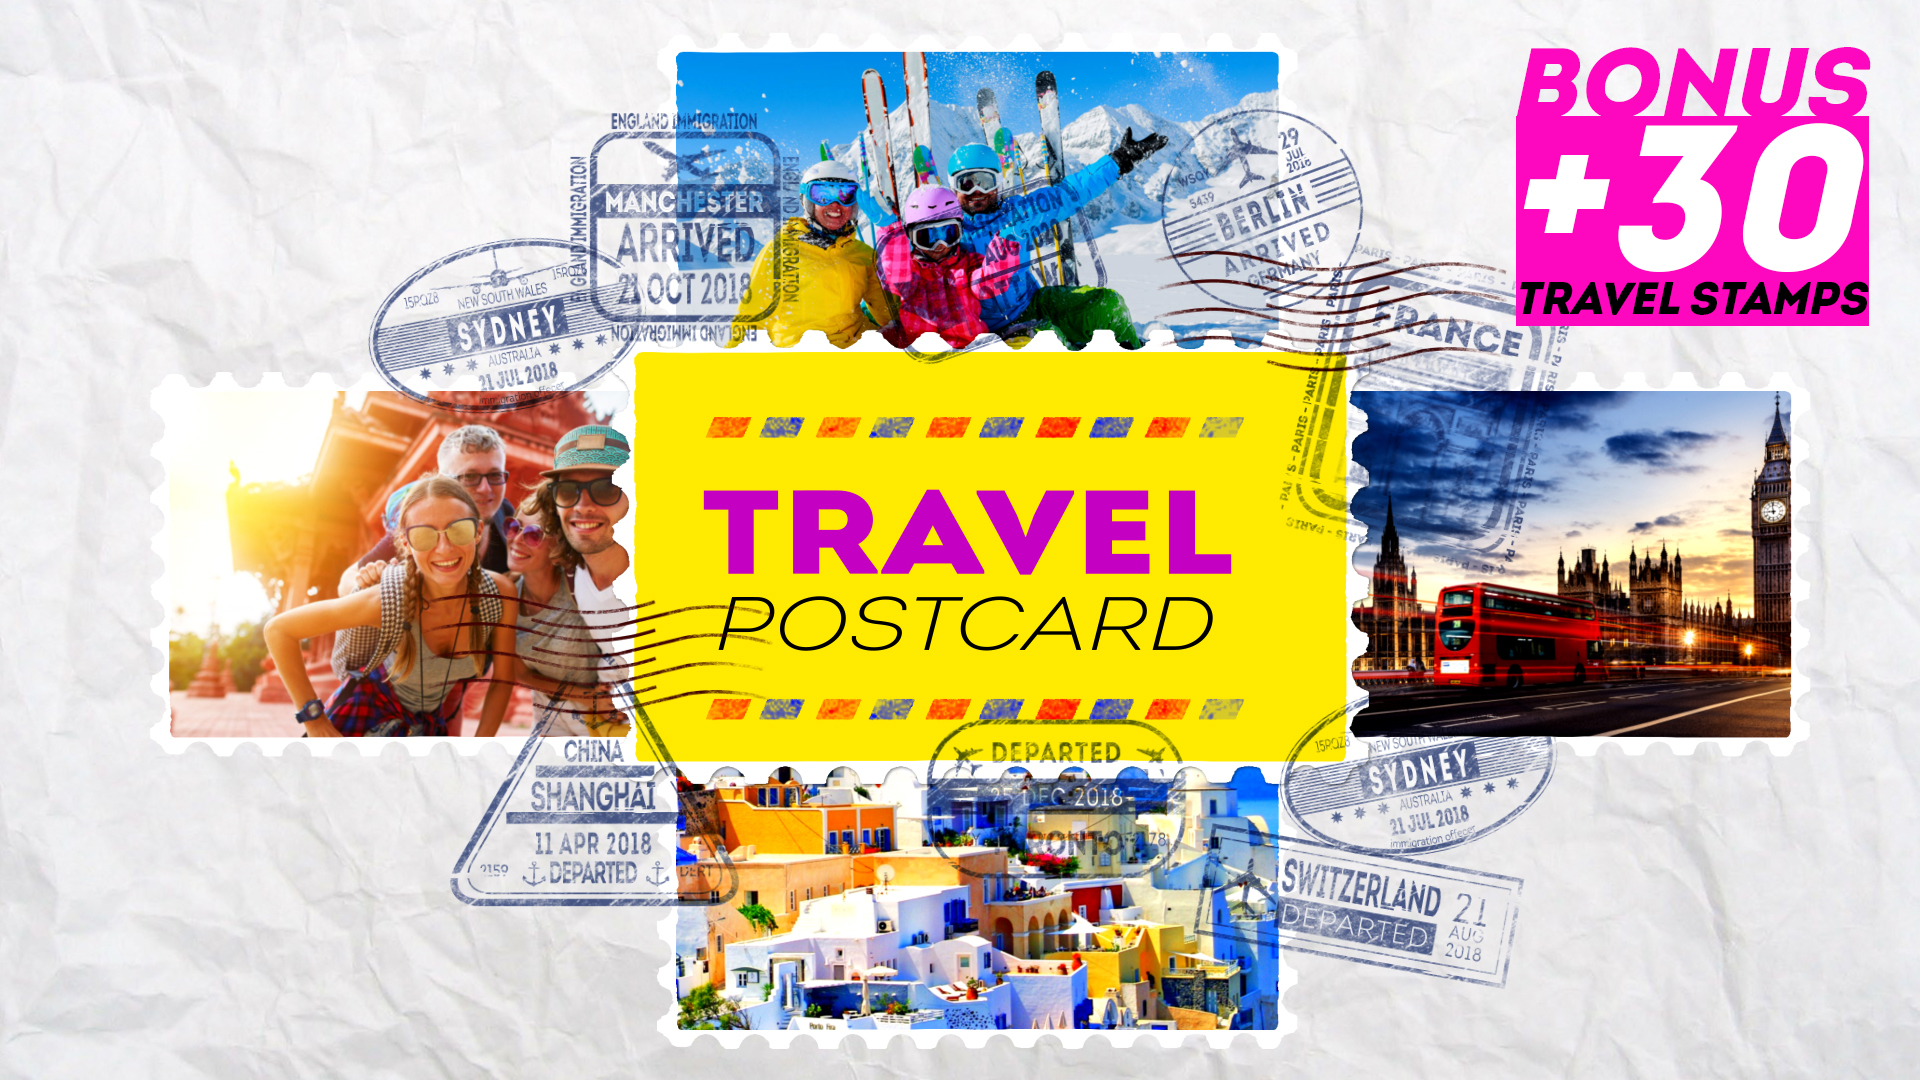 https://s3u.tmimgcdn.com/2074289-1560843093299_Travel%20Postcard.jpg